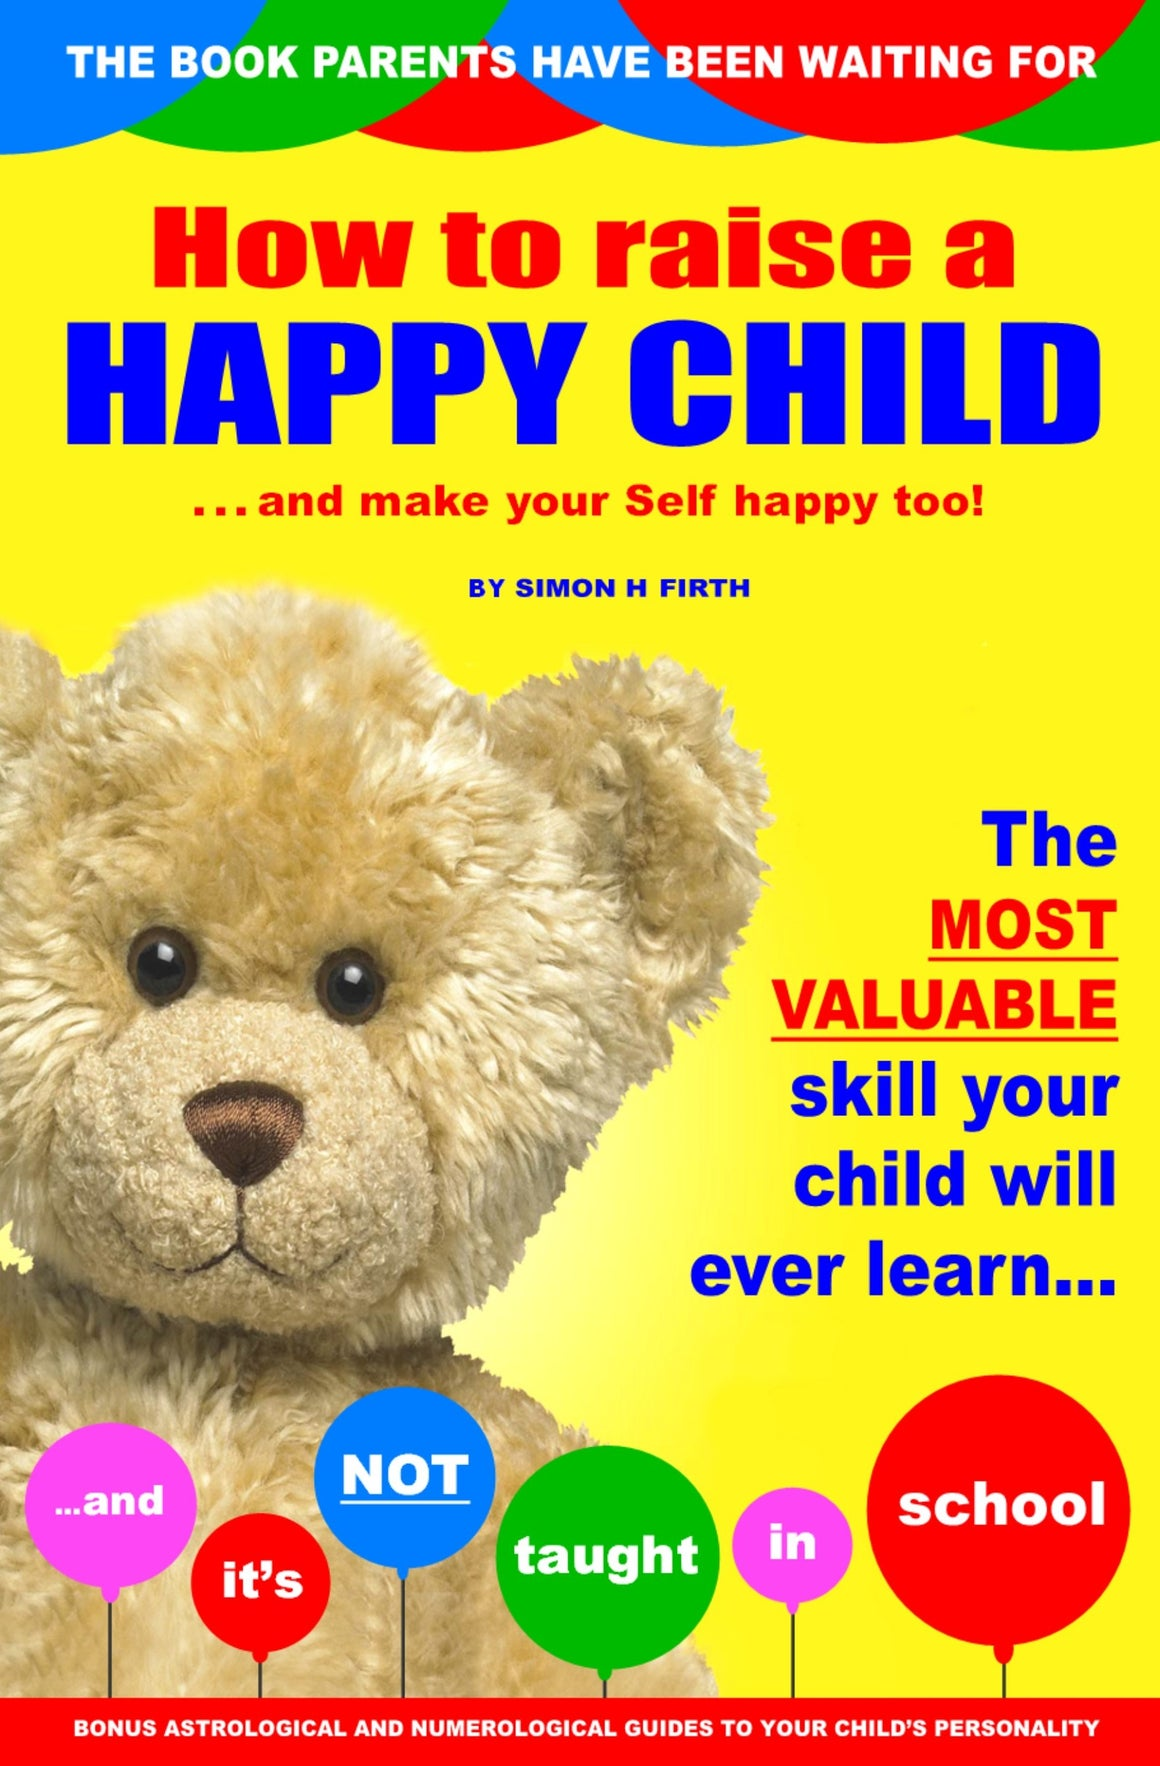 HOW TO RAISE A HAPPY CHILD: And make sure they get the absolute best start in life! (374 pages)